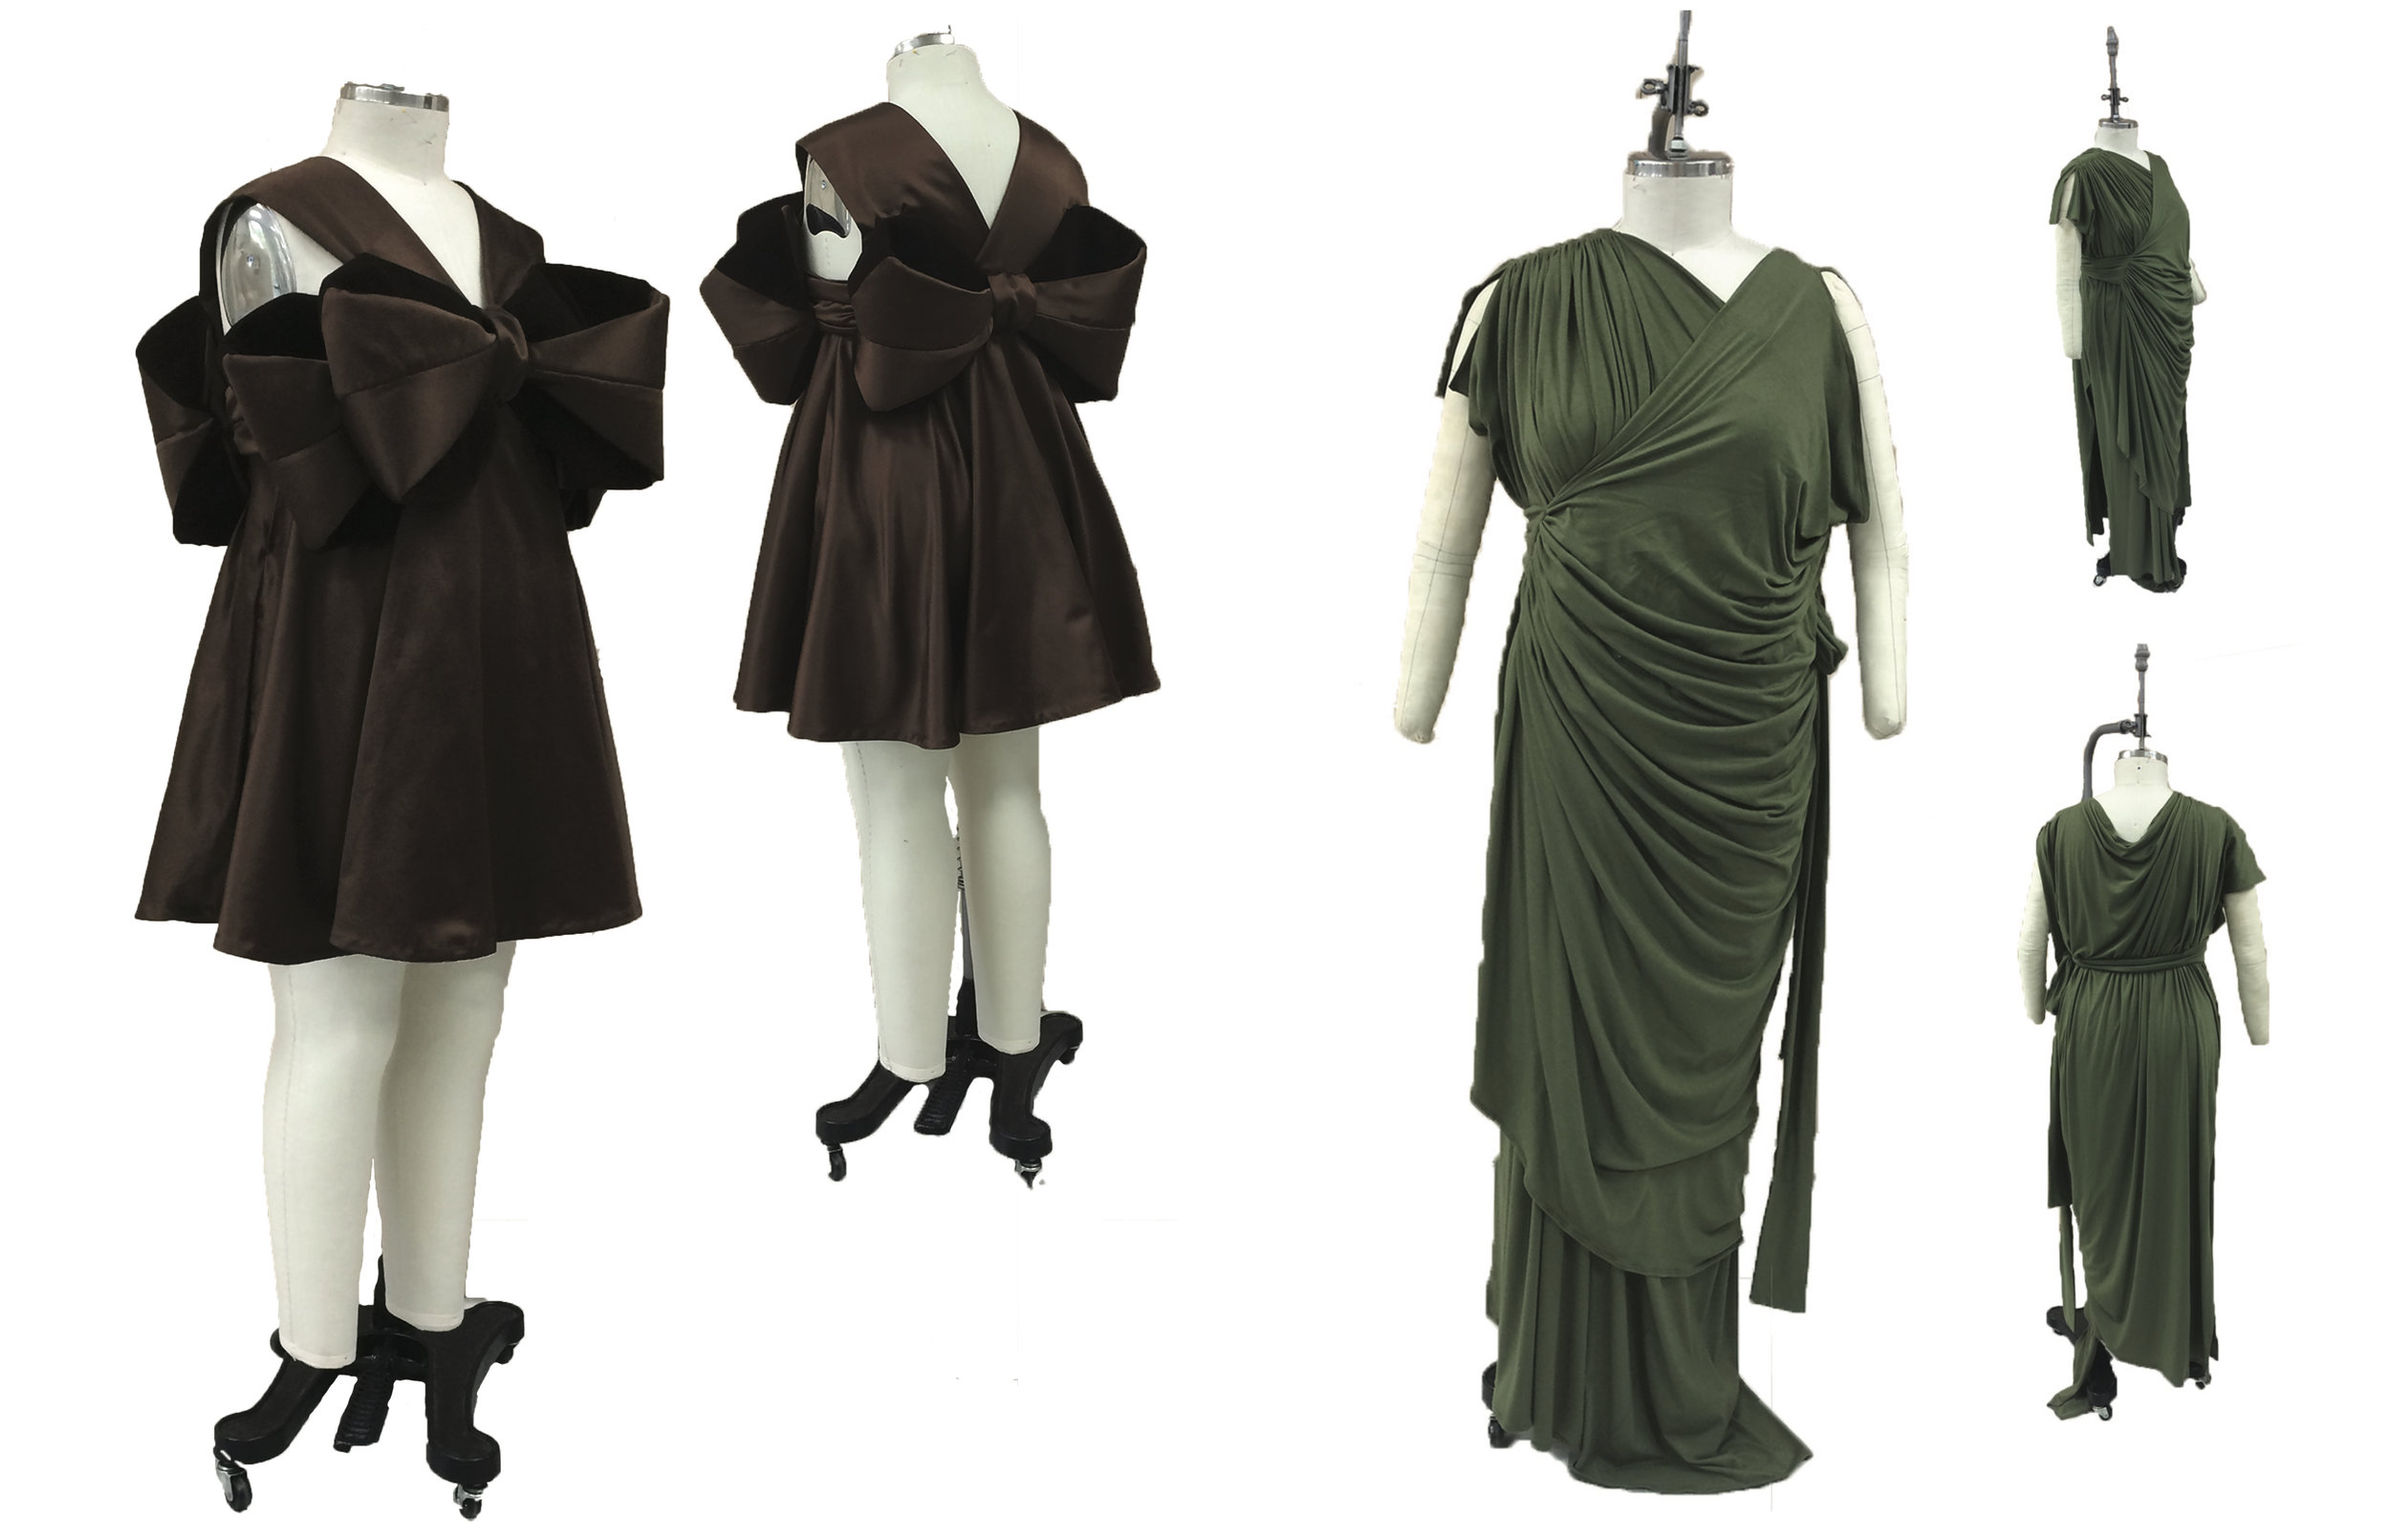 Past garments from Zaftig Kitty, at right is an example of a zero waste garment!